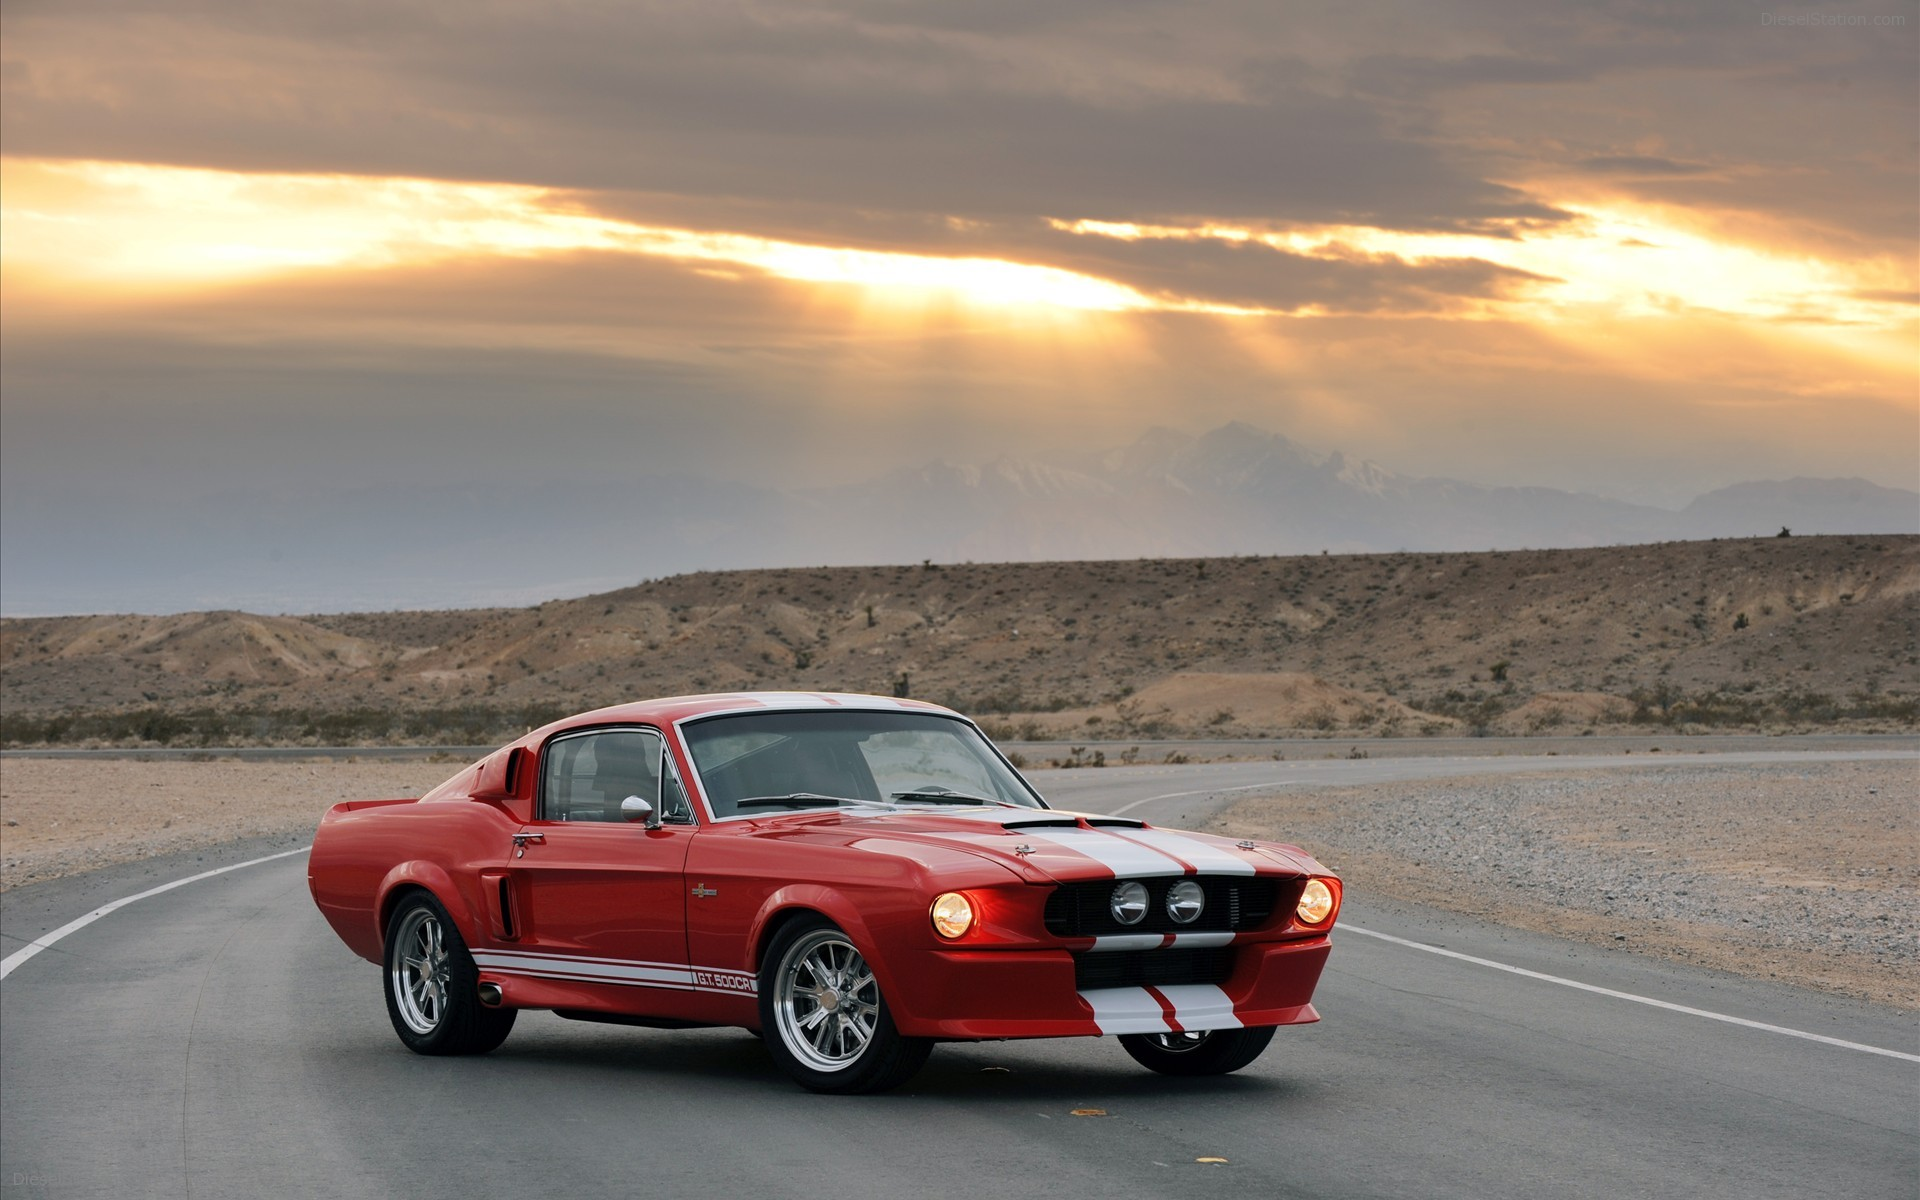 67 Mustang Shelby fastback Dream Vehicles Pinterest 1920x1200